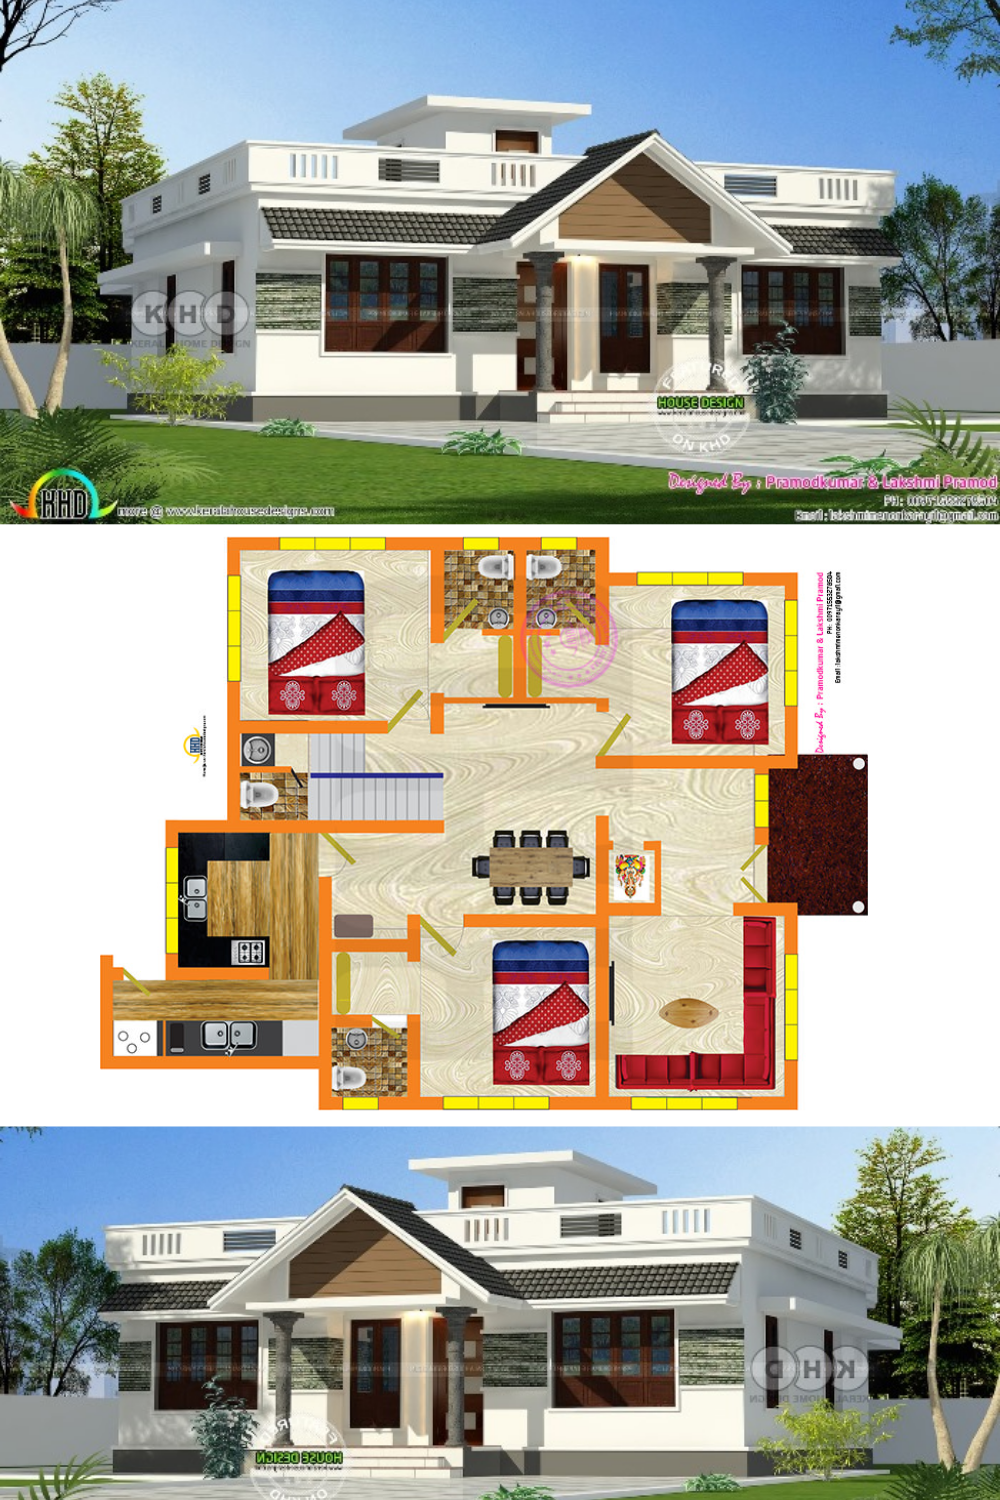 Stunning Three Bedroom Bungalow With Roof Deck In 2020 House Plan Gallery Home Design Floor Plans Best House Plans